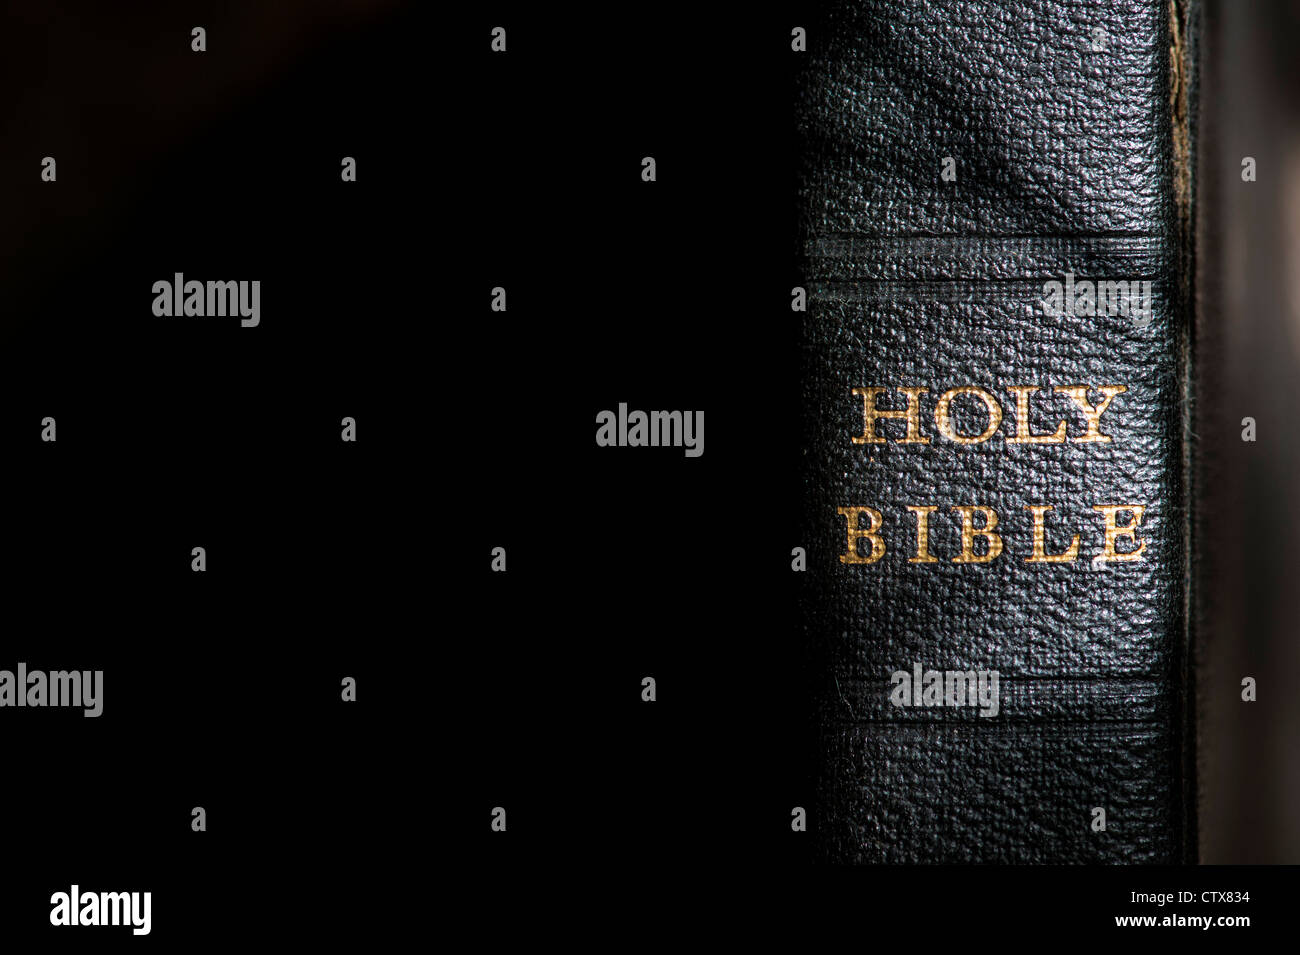 Holy Bible against a dark background - Stock Image